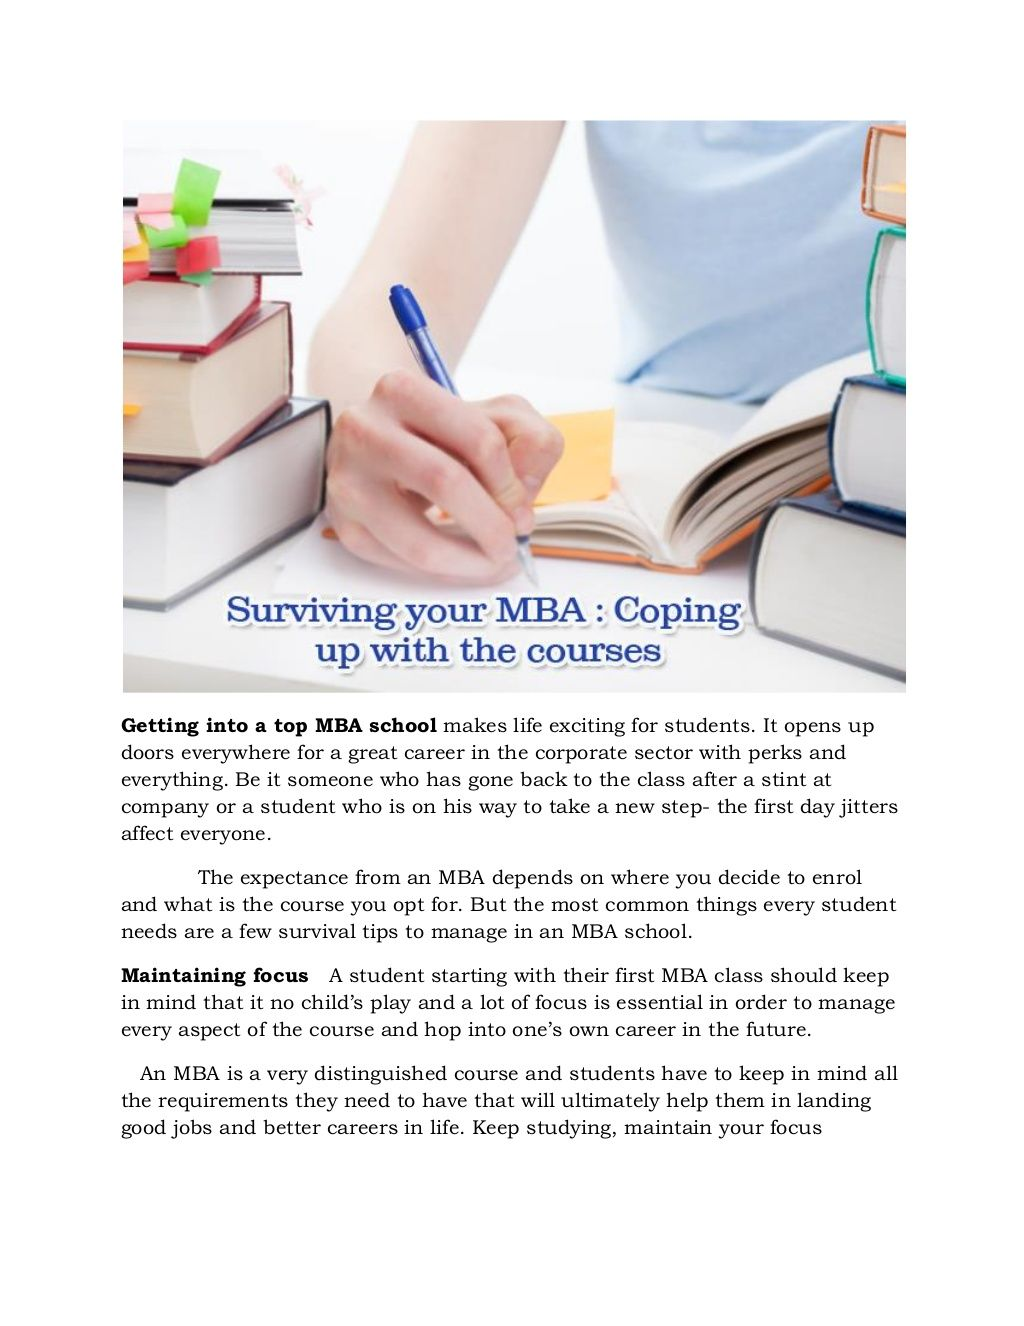 Survive Your Mba For The Right Career Boost 2014 2015 School Essay Writing Tips Bilingualism